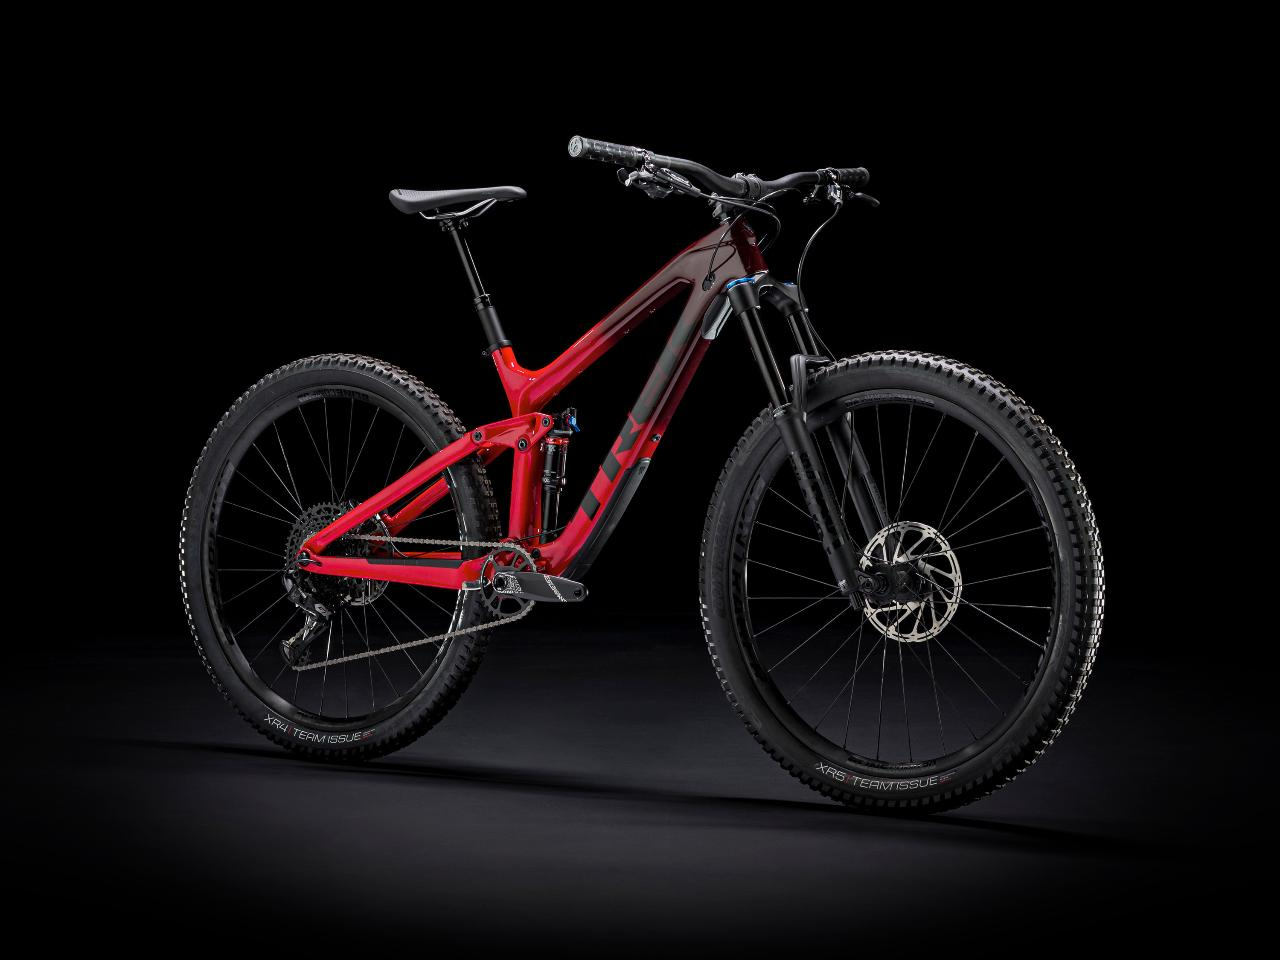 Trek Slash 8.0 -  Small